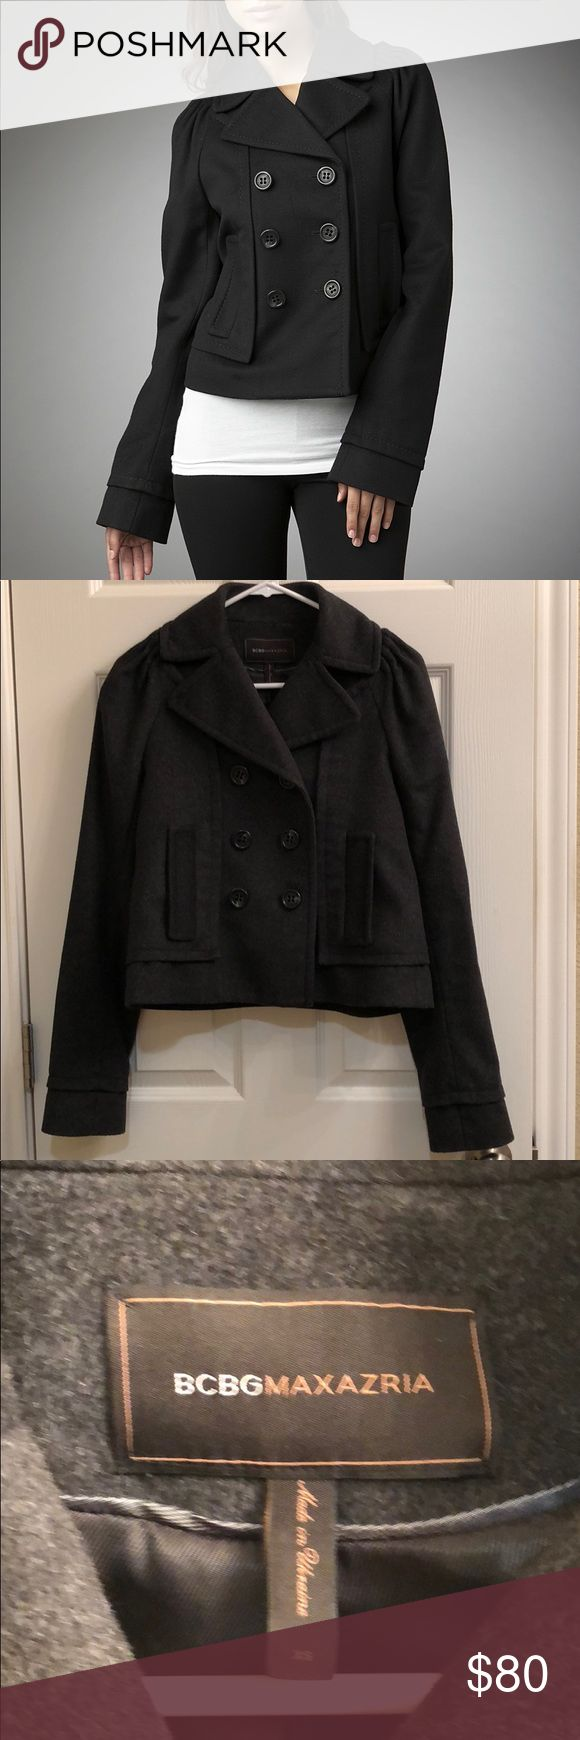 Double Breasted Wool Coat In excellent condition. Absolutely no wear. Color is dark grey. BCBGMaxAzria Jackets & Coats Pea Coats